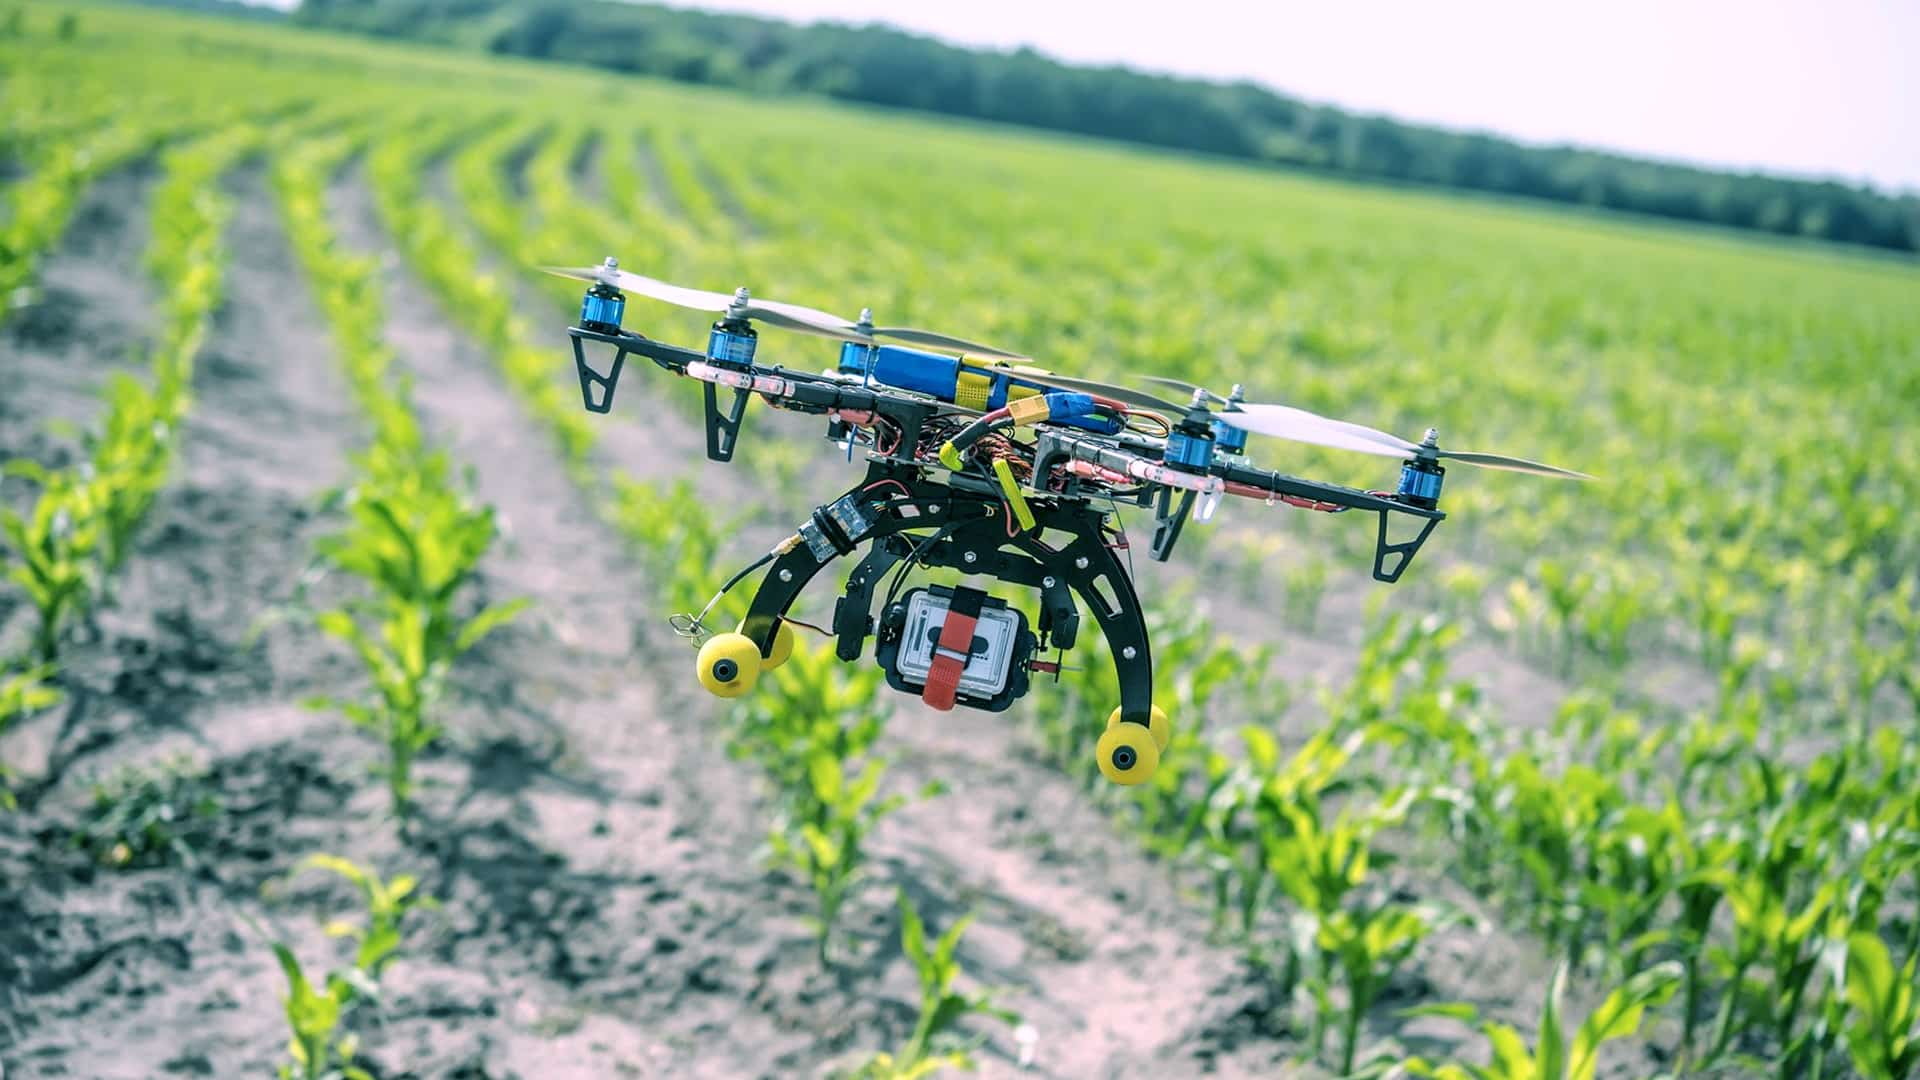 Agdhi launches AI-based tech to check quality of seeds